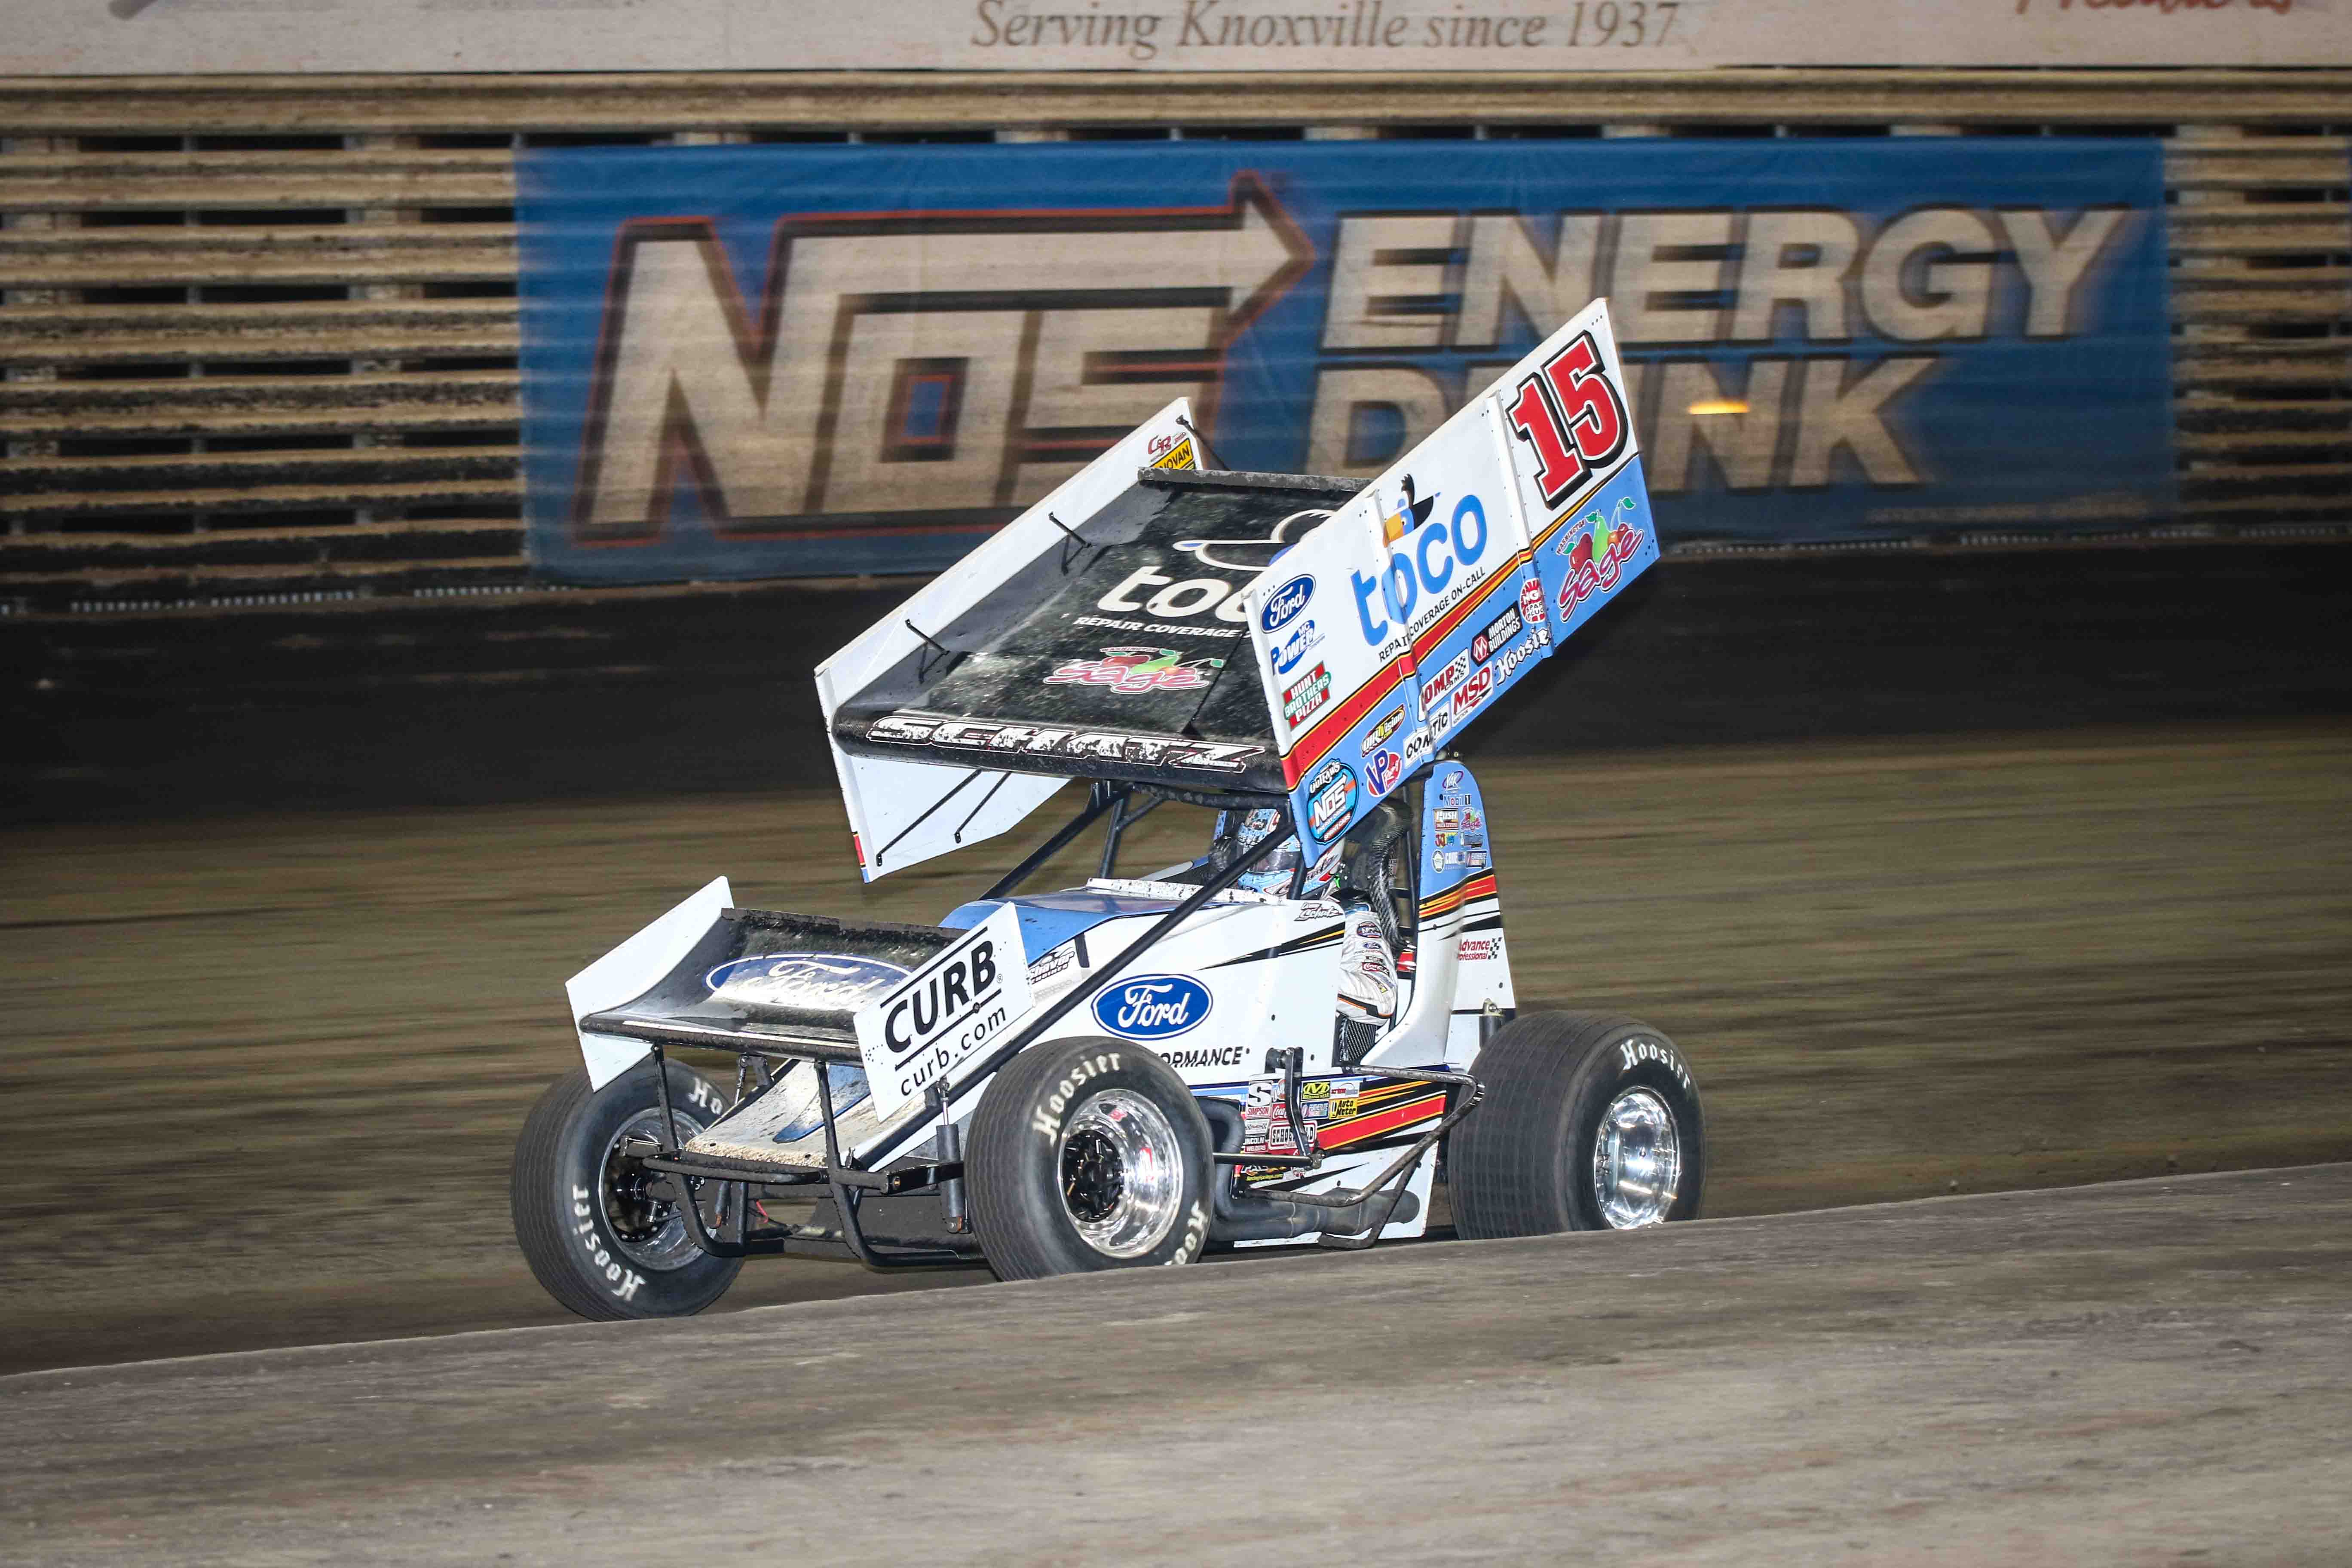 Schatz Rallies For Top 10 at 59th Knoxville Nationals